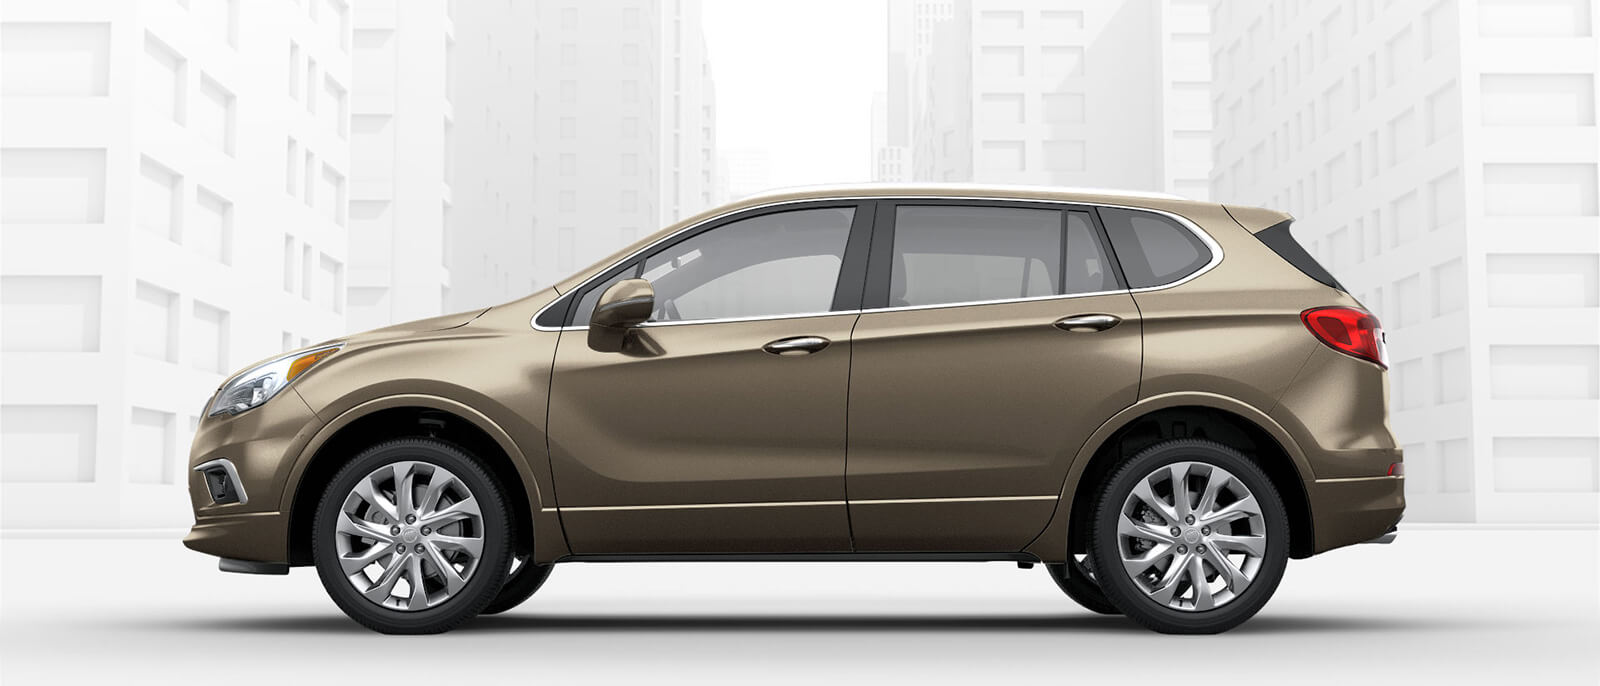 2017 Buick Envision side view in beige